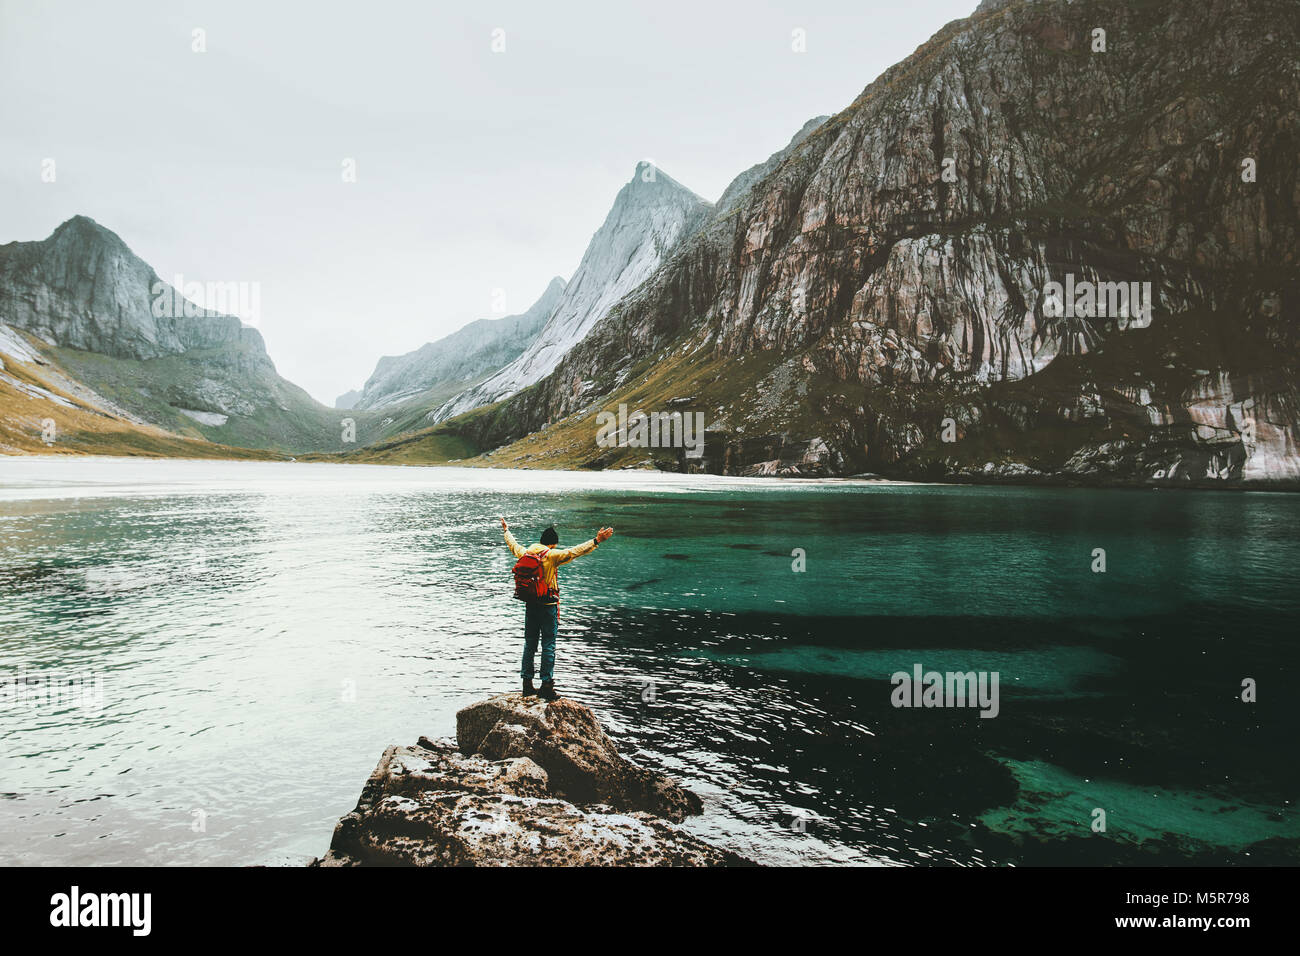 Traveler Man raised hands standing alone at sea stone Travel lifestyle survival emotional concept adventure outdoor - Stock Image